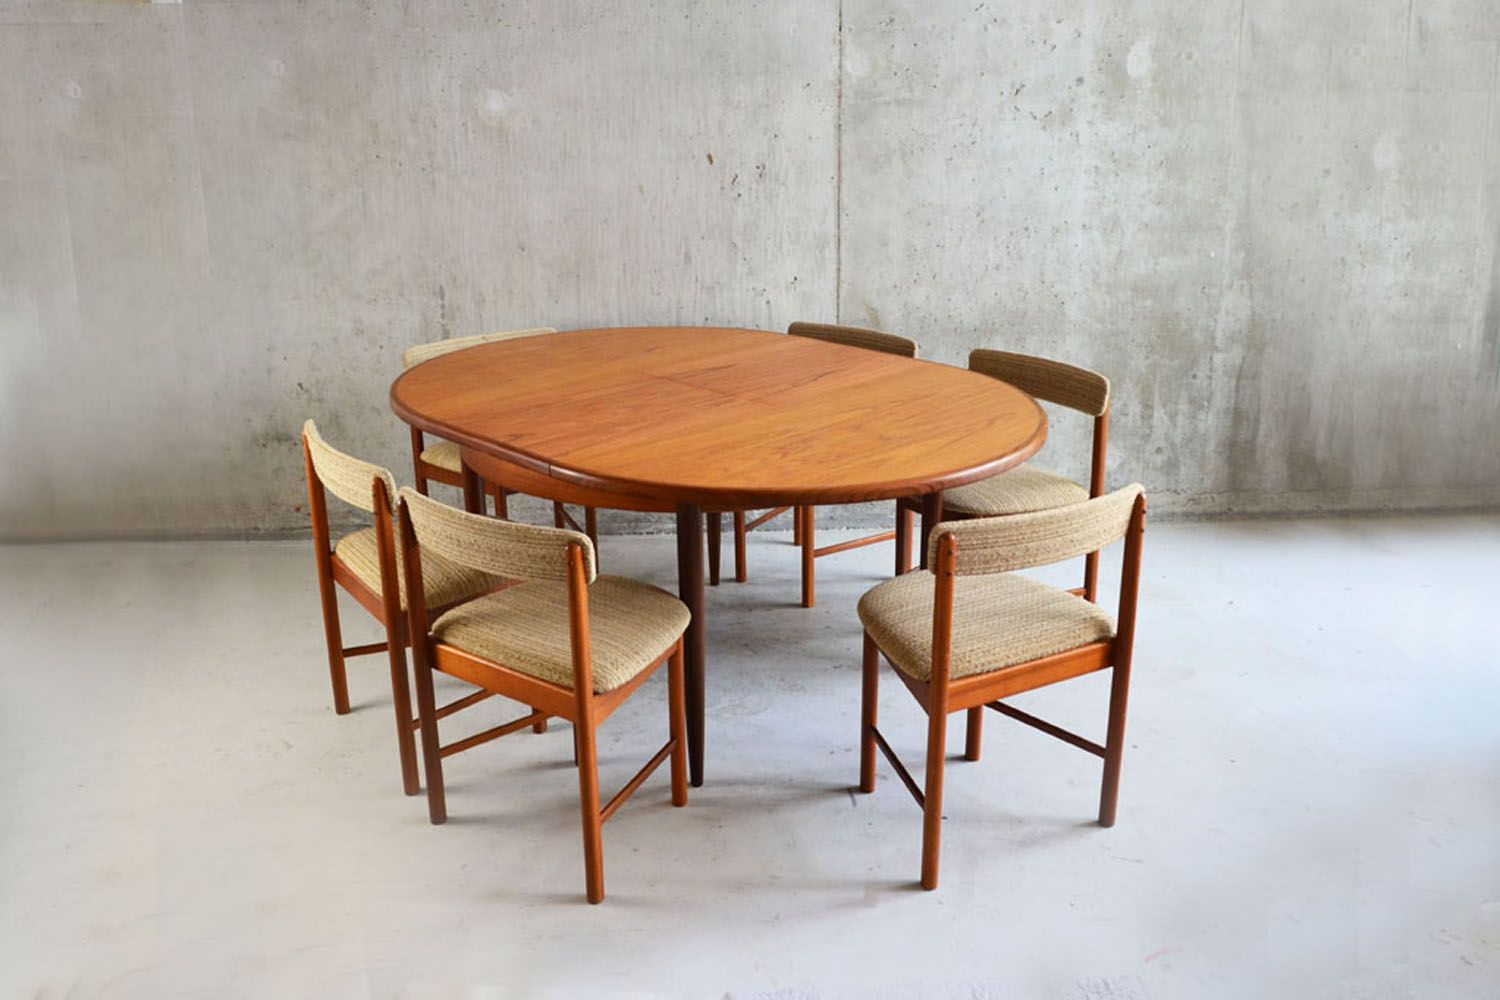 1970 S G Plan Extendable Dining Set Table And Six Chairs Vinterior London Ercol Dining Table Retro Dining Table Mid Century Dining Table [ 1000 x 1500 Pixel ]